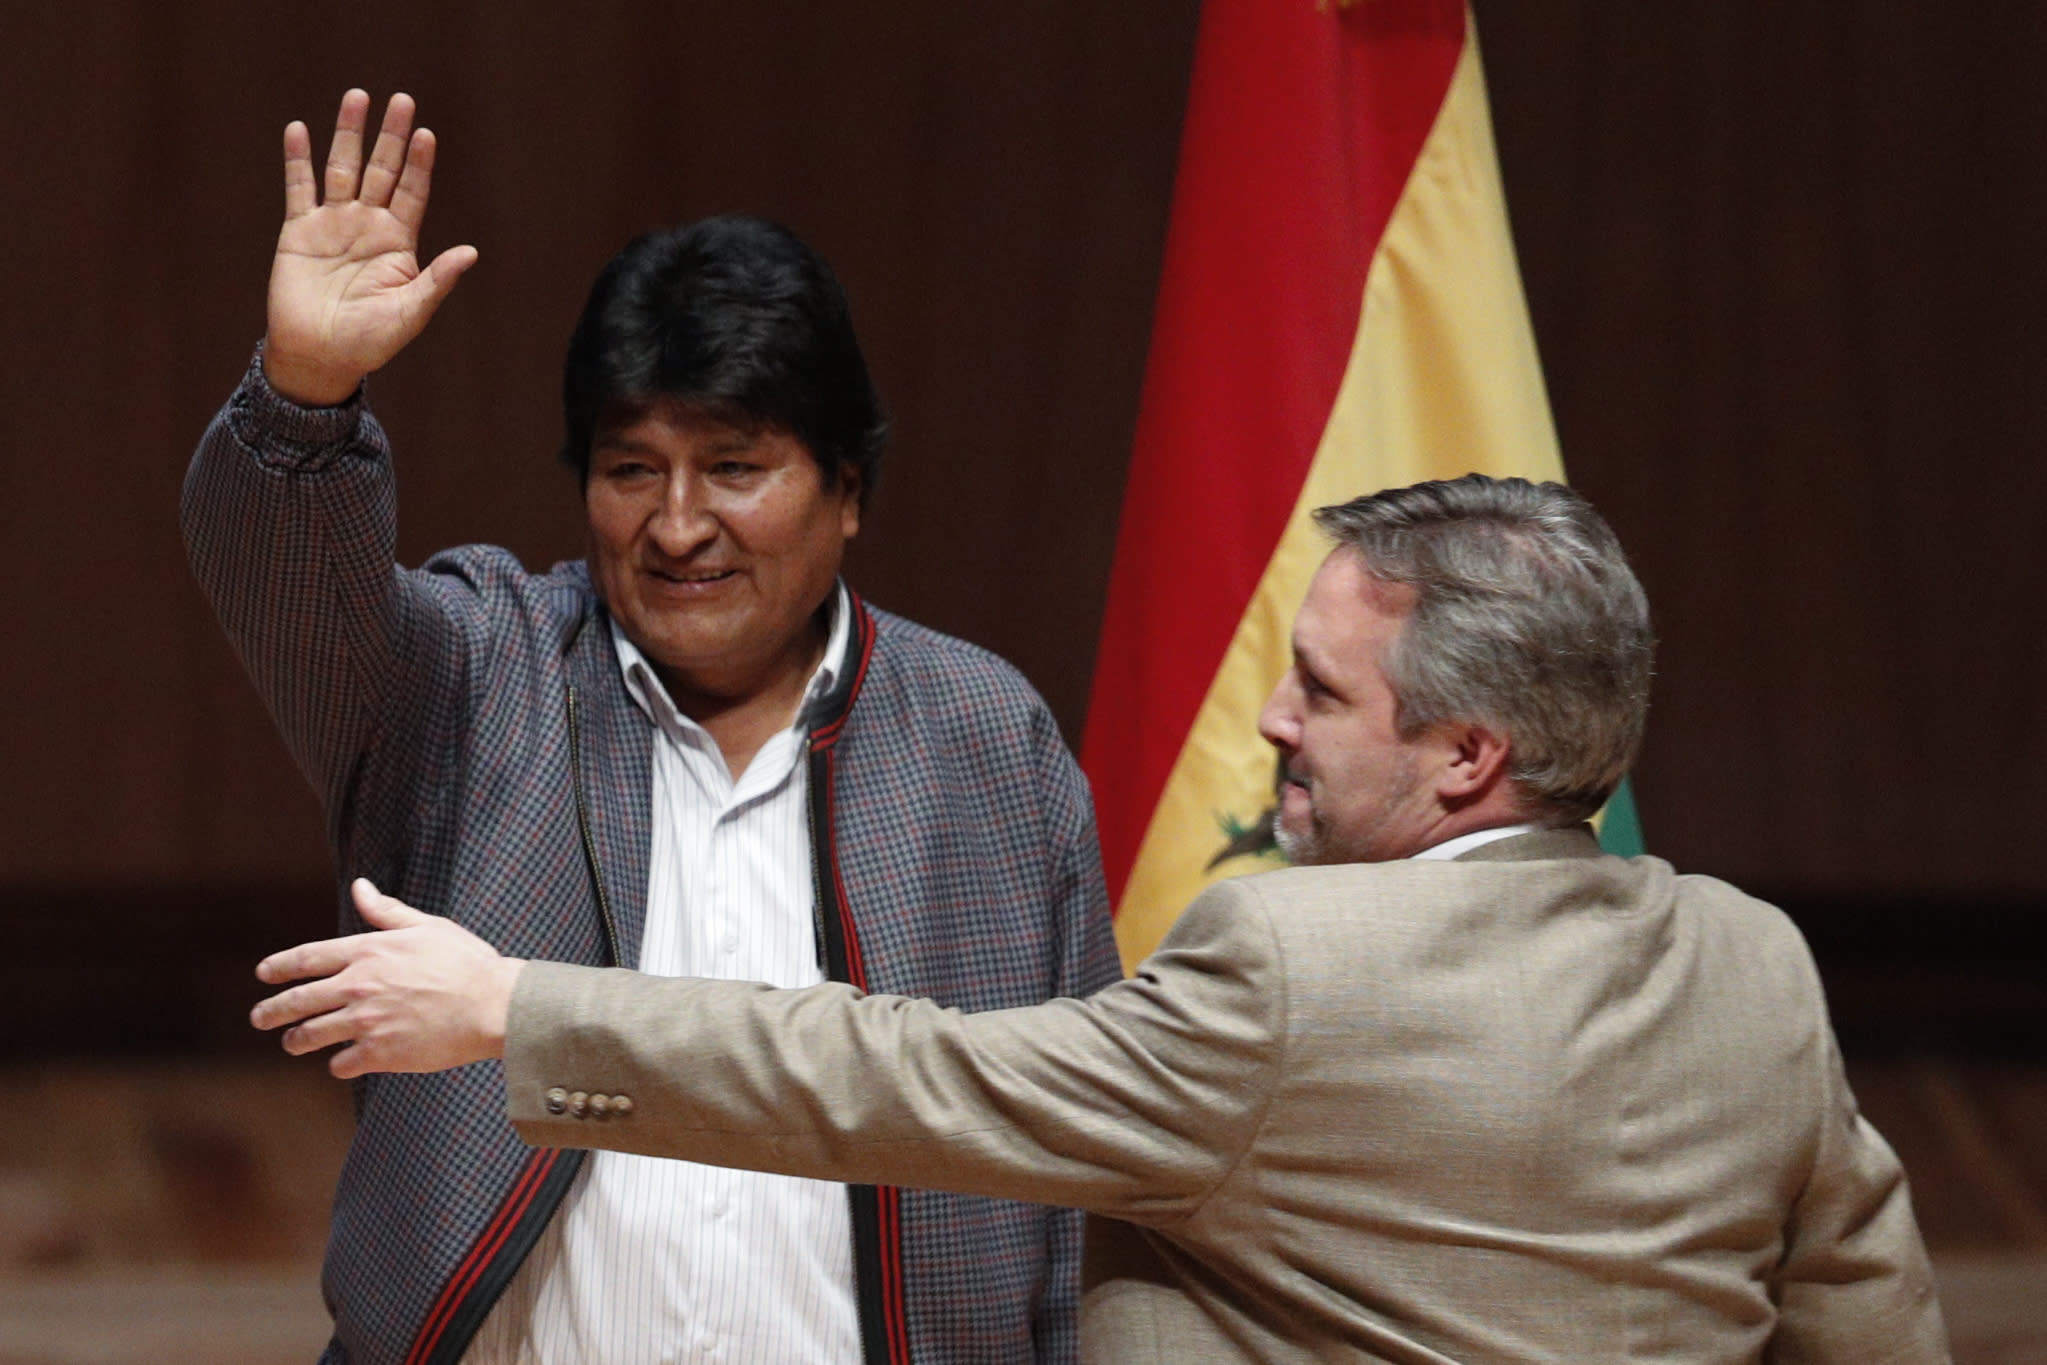 Bolivia's former President Evo Morales waves as he arrives for a dialog with students and indigenous communities, at Ollin Yoliztli Cultural Center in Mexico City, Tuesday, Nov. 26, 2019. Bolivia is struggling to stabilize after weeks of anti-government protests and violence in which at least 30 people have been killed. Former president Evo Morales resigned on Nov. 10 after an election that the opposition said was rigged. (AP Photo/Rebecca Blackwell)